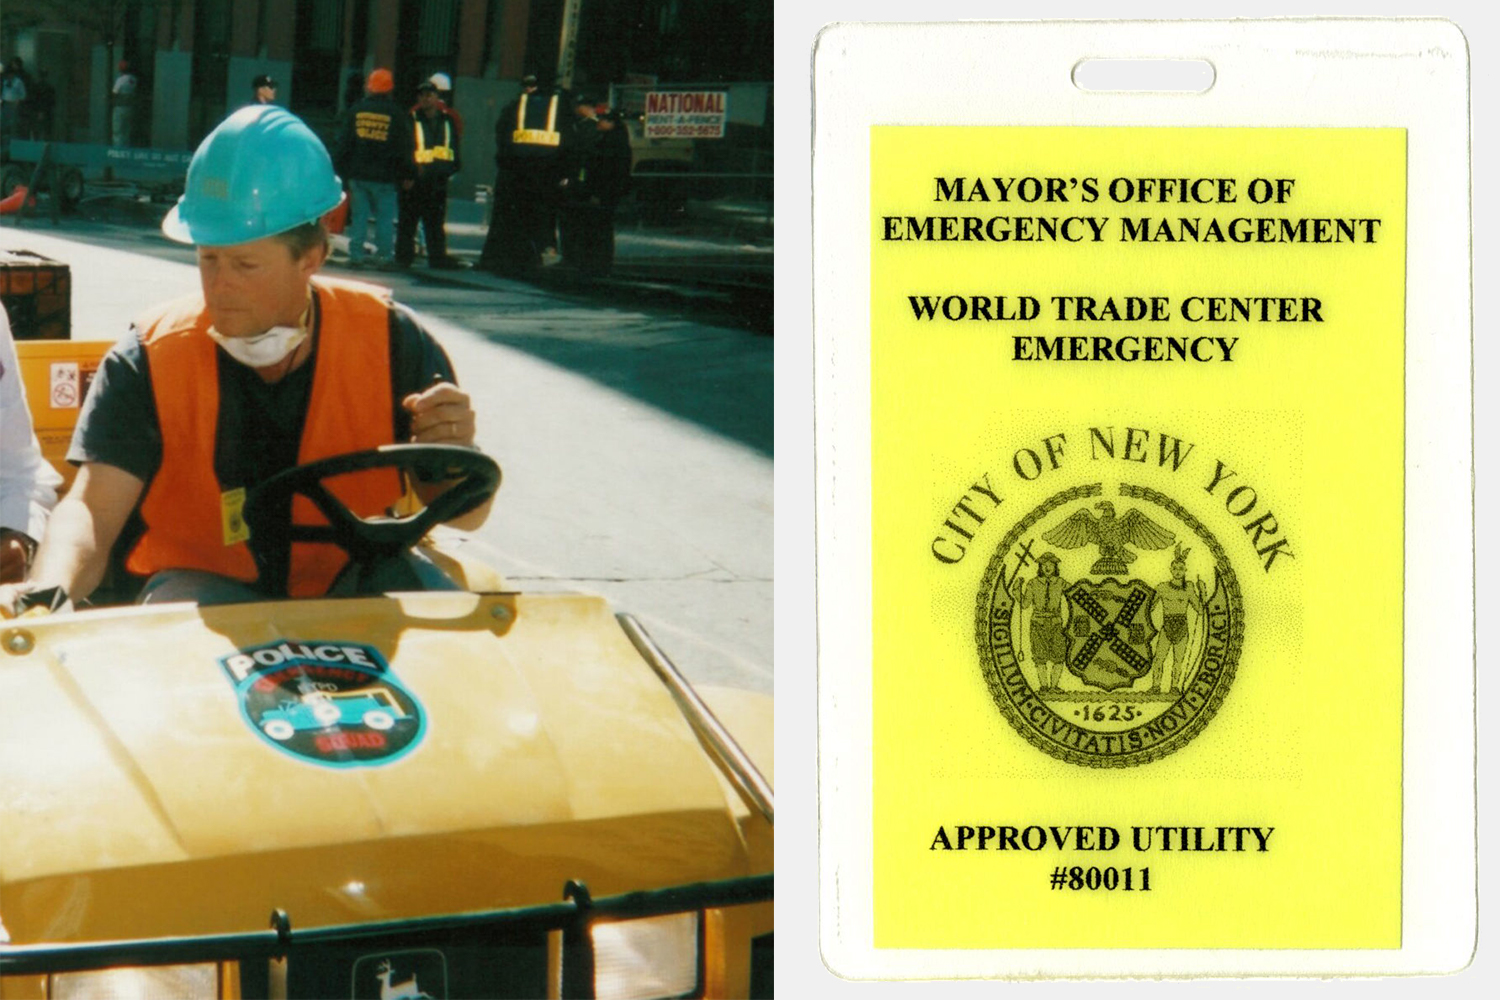 The left side of the image shows Tim Mullally of Mullally Tractor Sales in a yellow John Deere Gator at Ground Zero after 9/11, the right side shows a yellow pass from the City of New York used to get around the World Trade Center site in the aftermath of the terror attacks